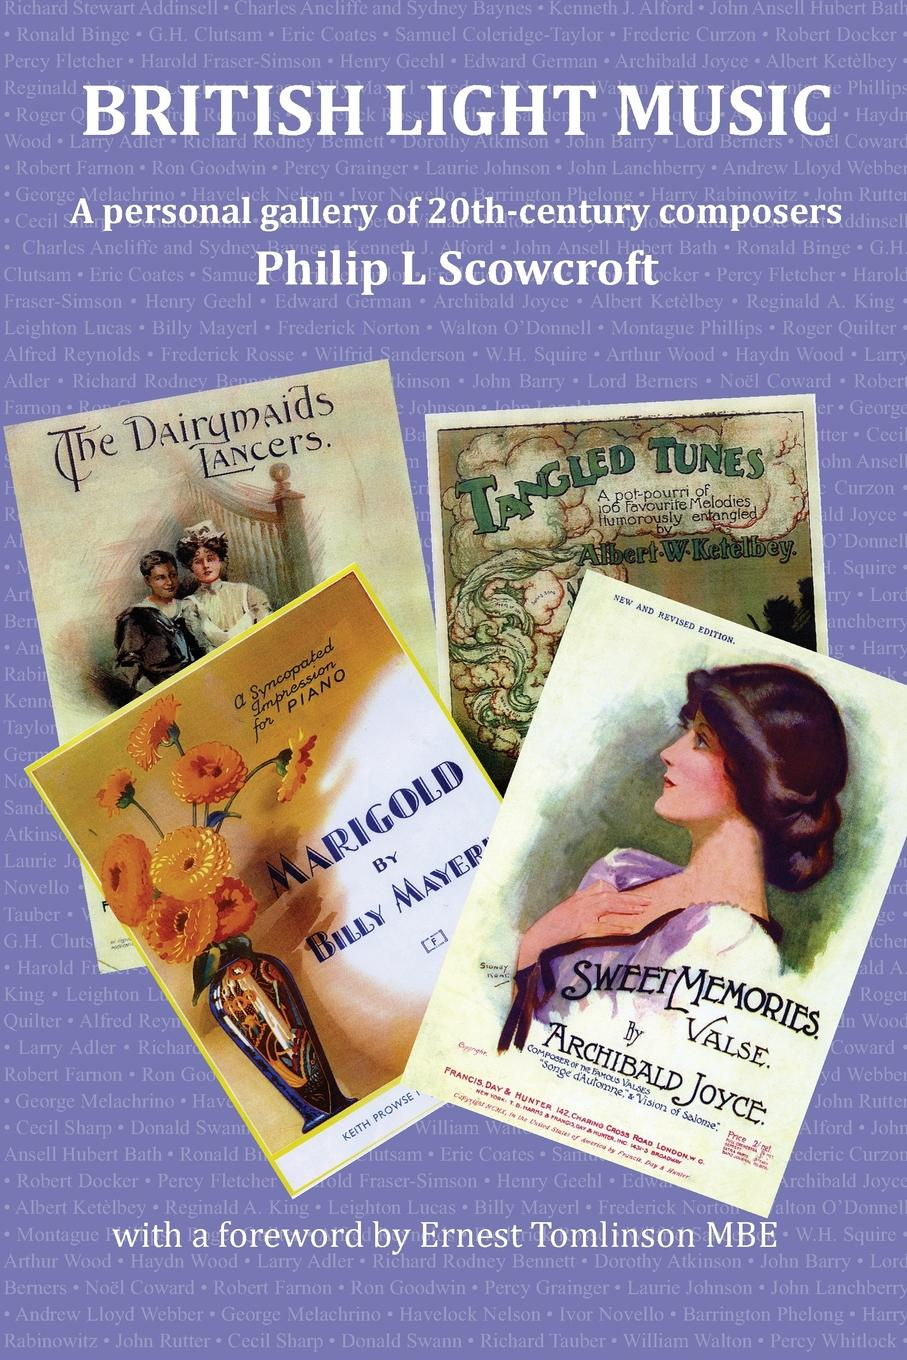 Philip L. Scowcroft. British Light Music, a Personal Gallery of 20th Century Composers.